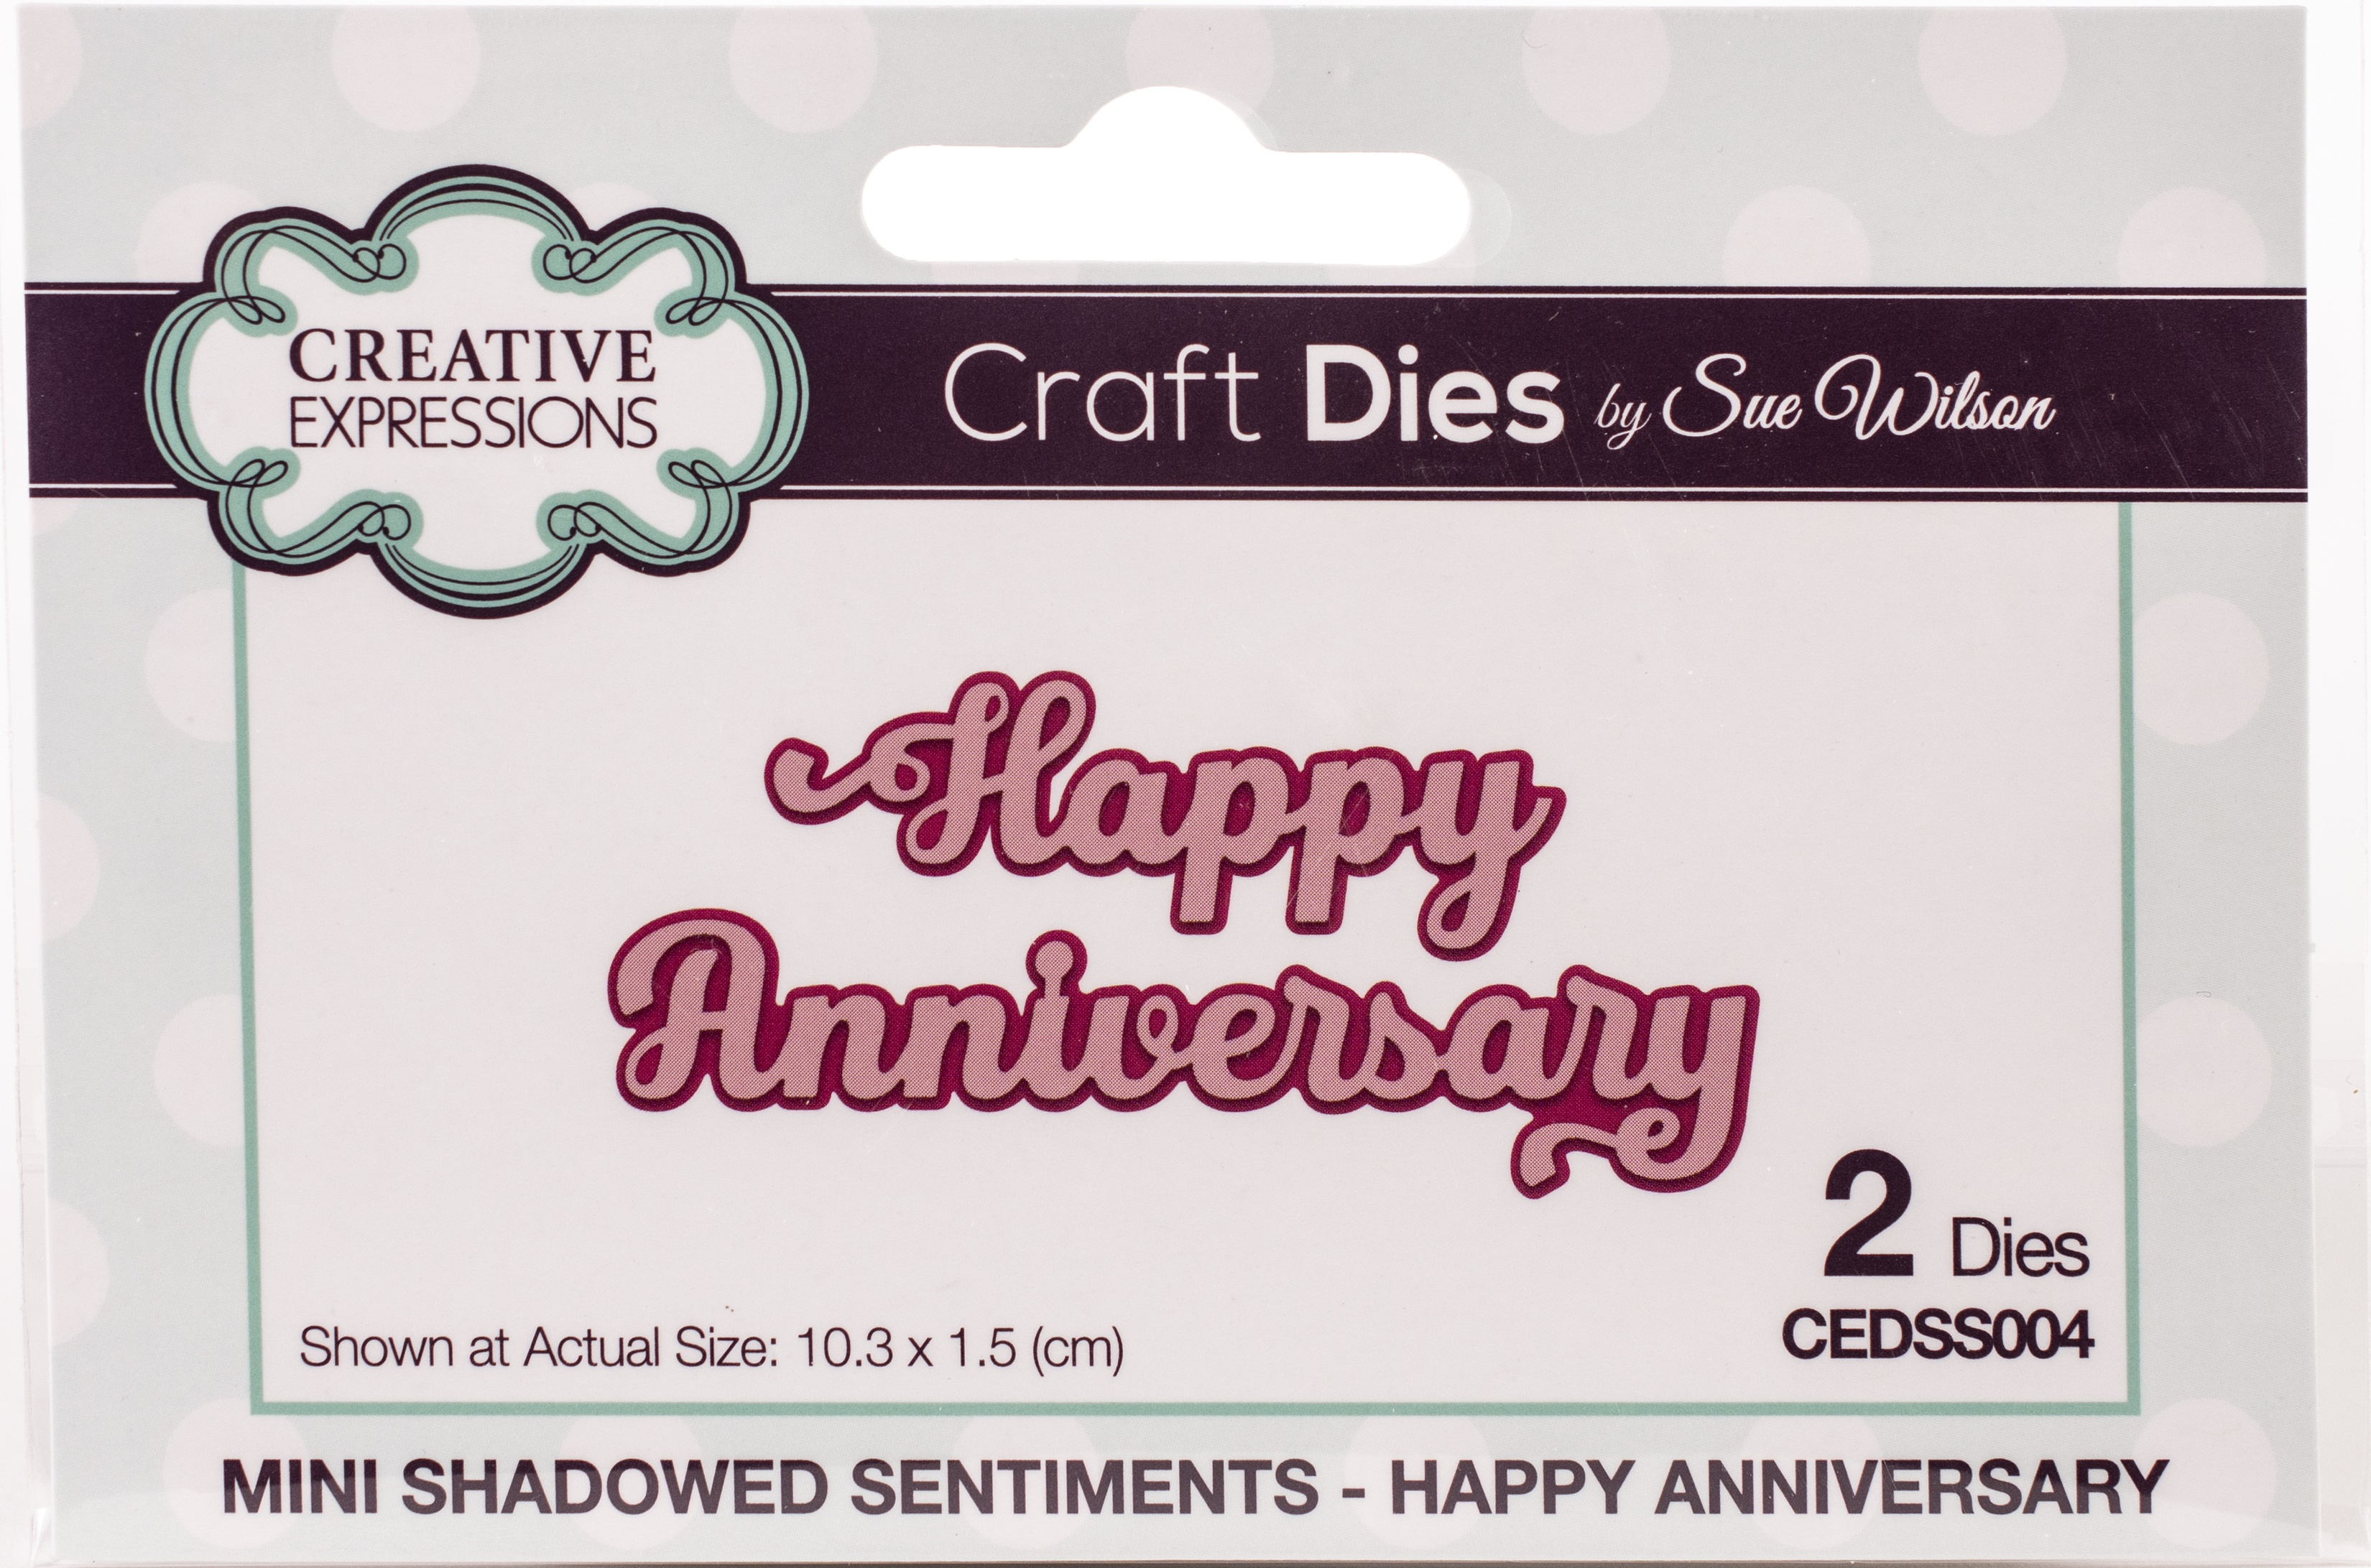 Creative Expressions Craft Dies By Sue Wilson-Mini Expressions- Always In My Hea... - copy - copy